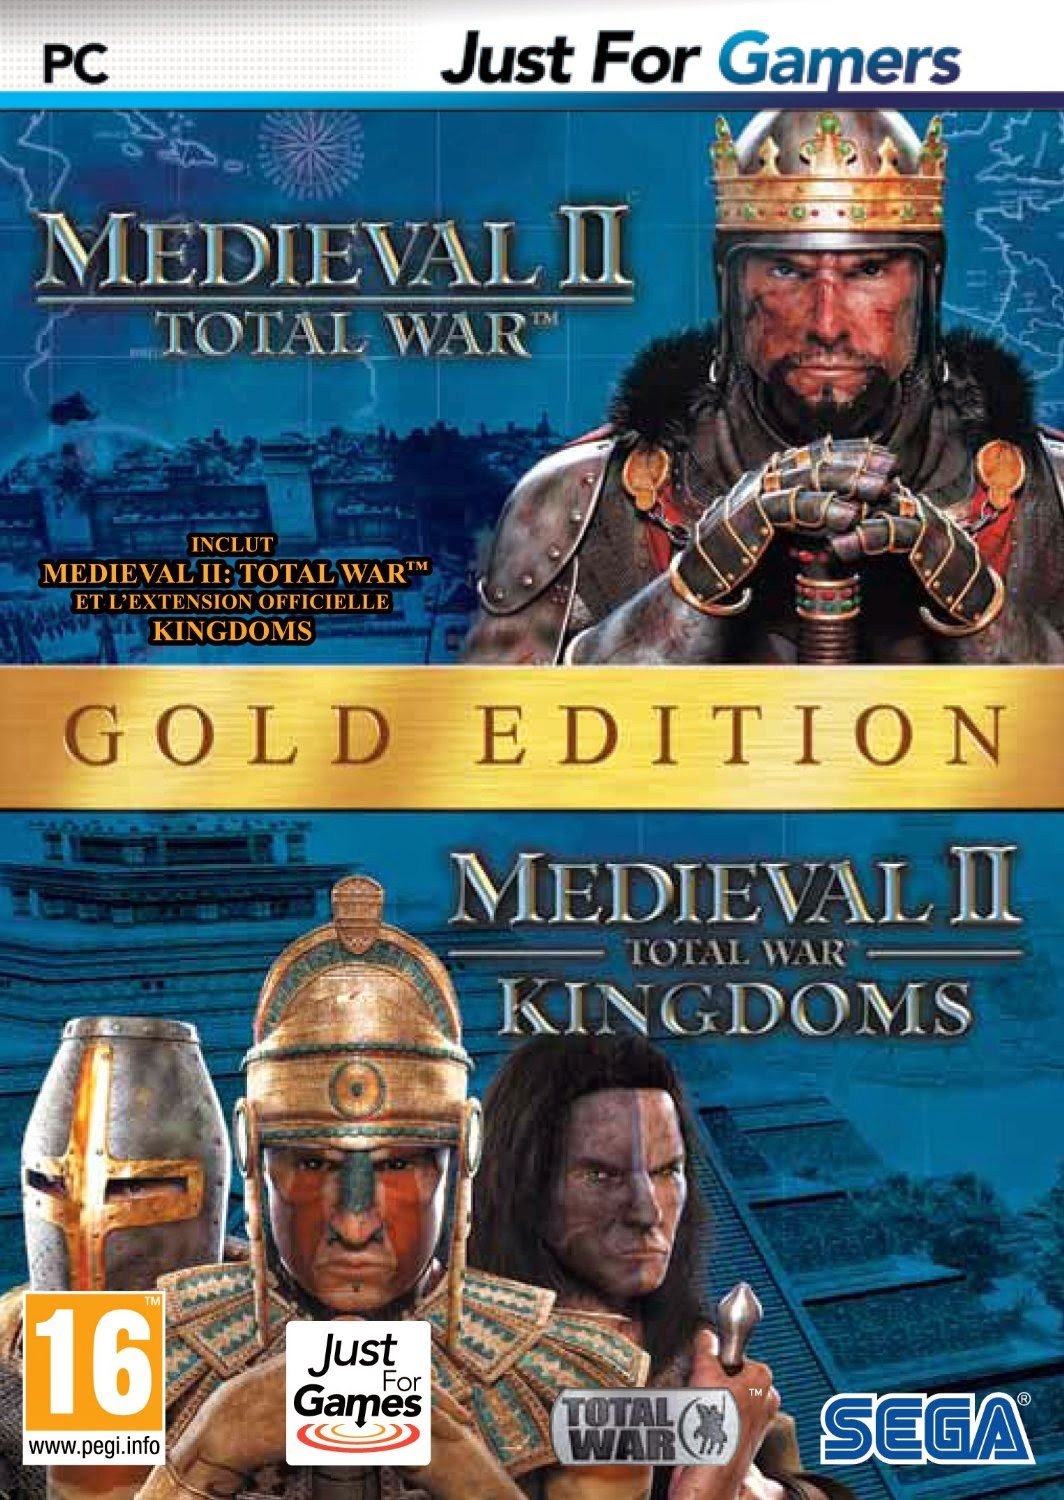 total war medieval ii dition gold jeu complet pour pc en francais crack inclus. Black Bedroom Furniture Sets. Home Design Ideas